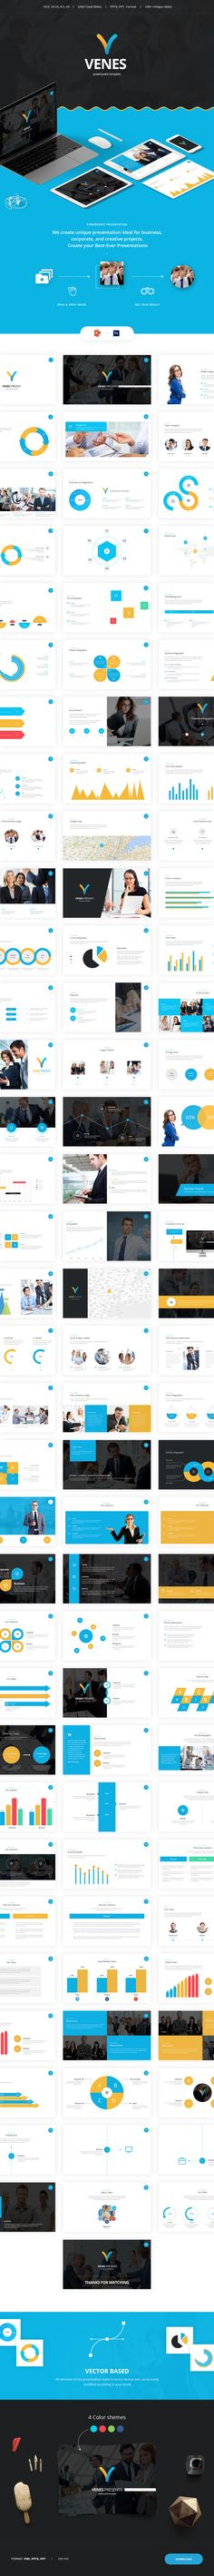 Venes – Multipurpose powerpoint template, ideal match for business or creative presentations. We offer over 3200 presentation slides, with great professional design and creative ideas.  Our presentation template is simple, easily customizable, and features free support and updates. Impress your audience with this animated PPT Template!   Purchase it now only for 13$!    Author site: http://Grooni.com  #powerpoint #presentation #template #graphicriver #free #business